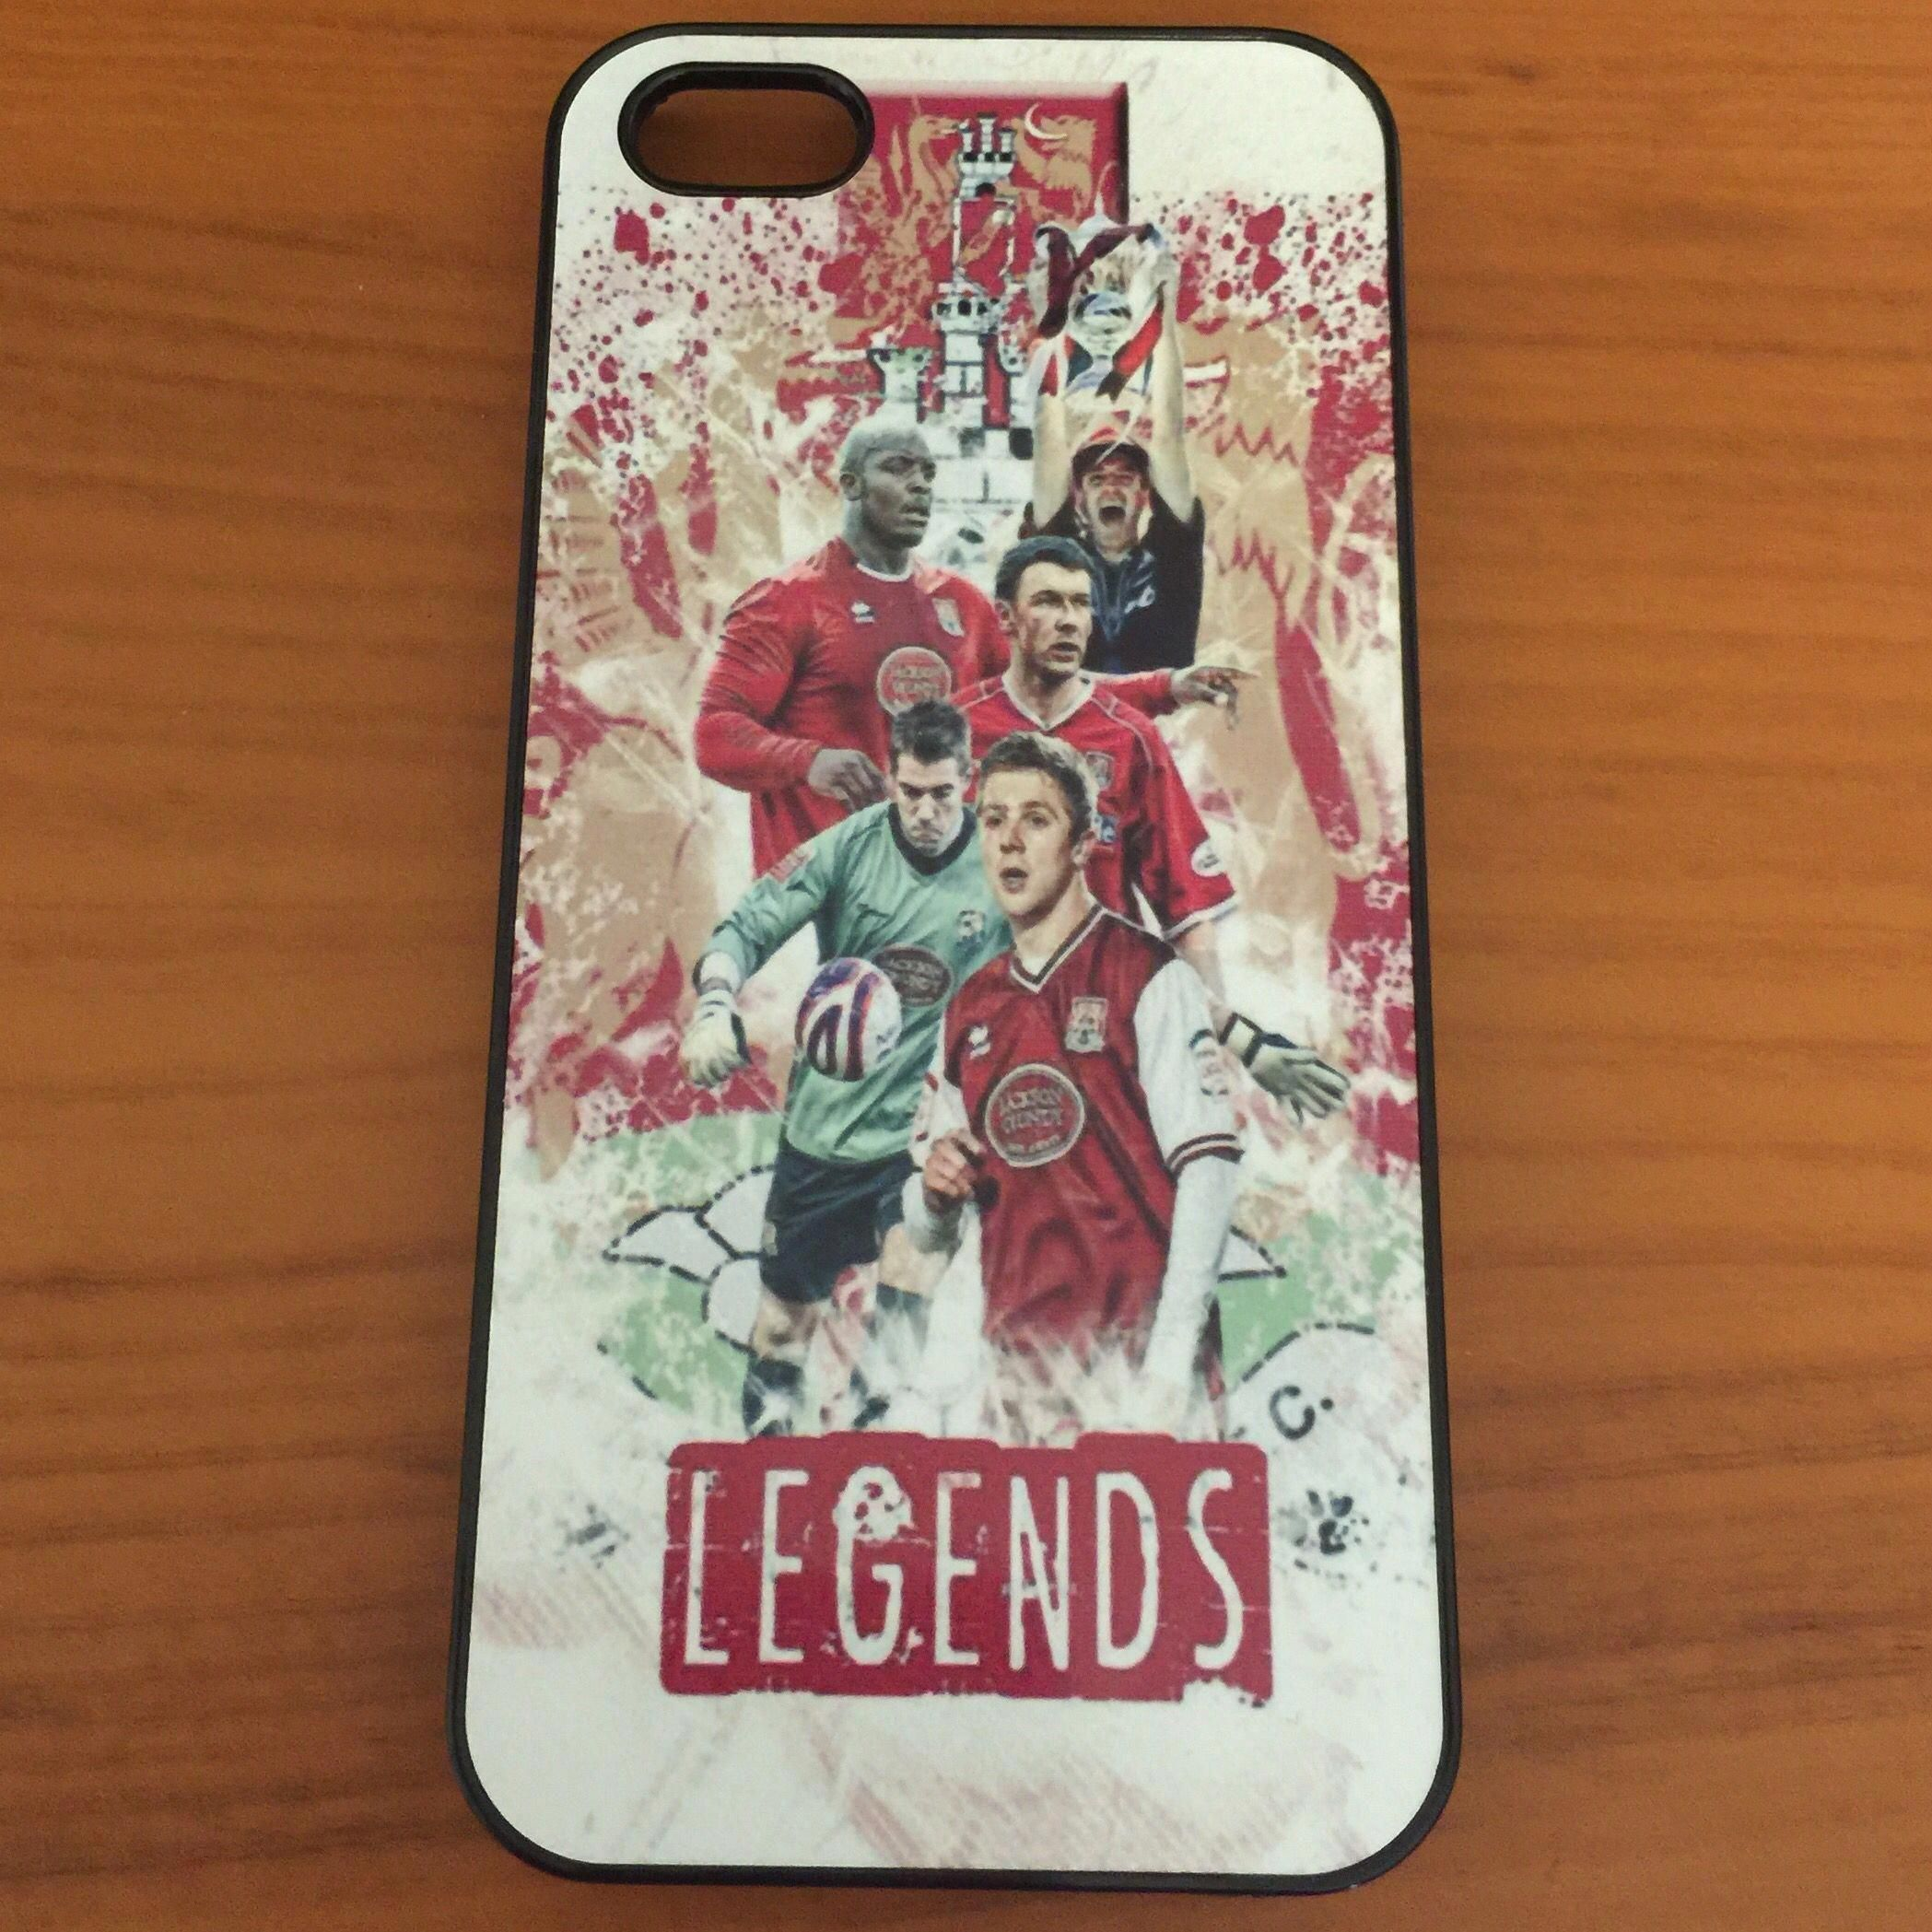 JUST DONE Personalised PhoneTabletKindle Cases With Any Images Of Your Choice FootyDezigns FootyDezigns uk FootyDezigns Storesukpersonalisedproductsltd We Have Apple And...